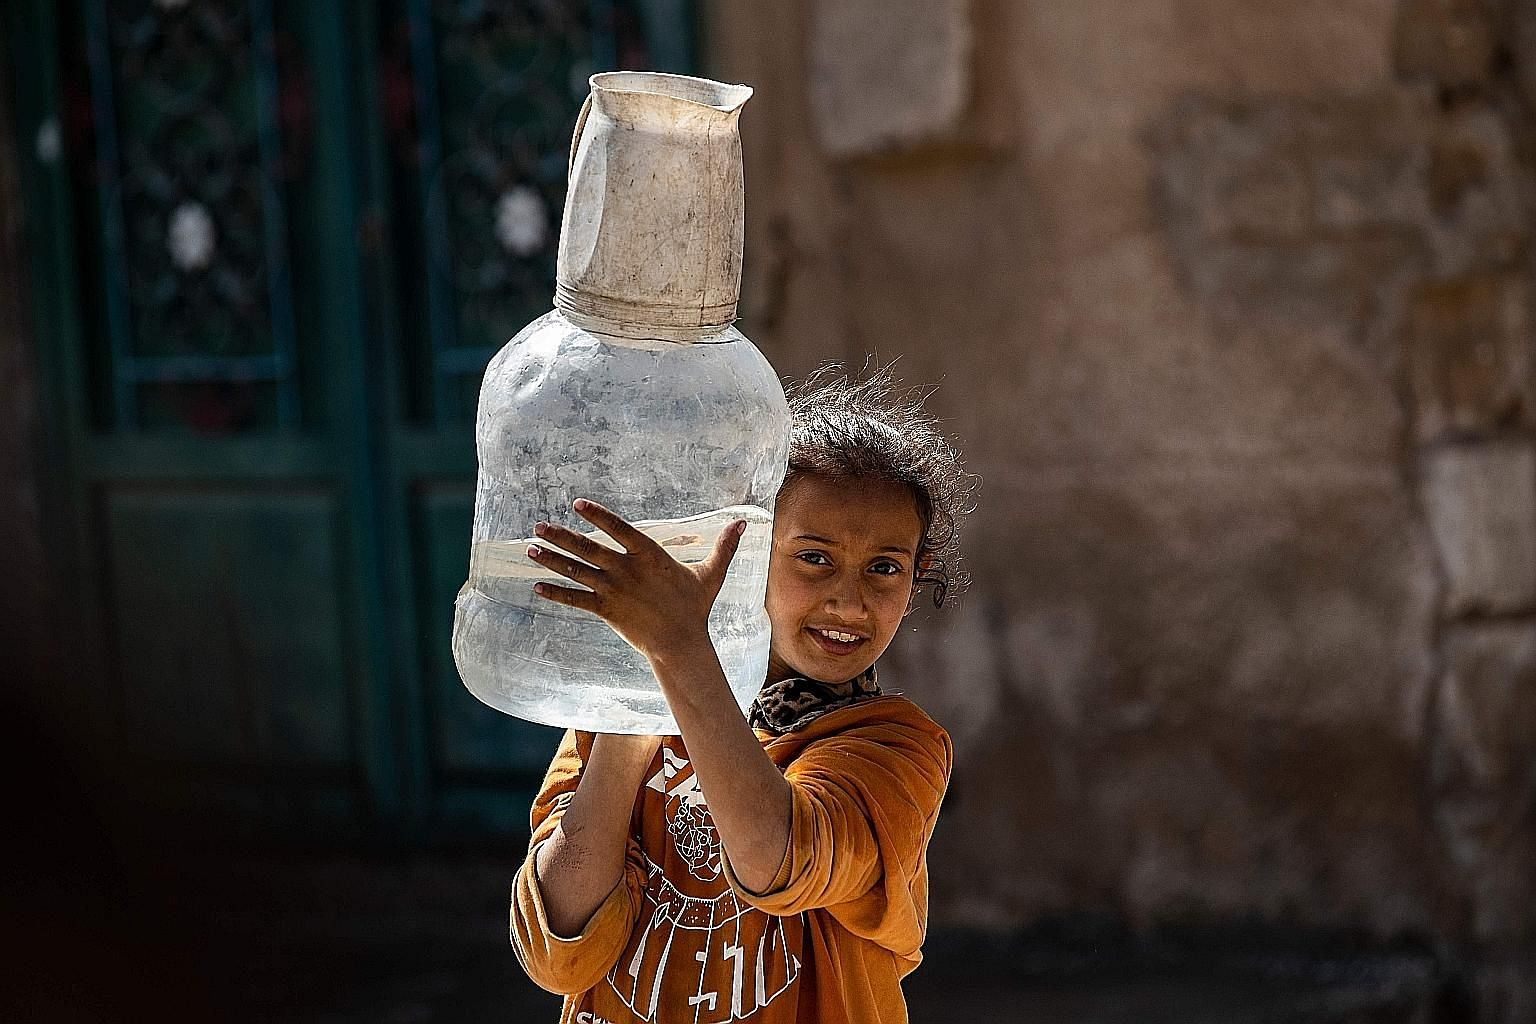 A girl carrying a container filled with water amid shortage in the Kurdish city of Al-Hasakah, in north-eastern Syria, earlier this month.